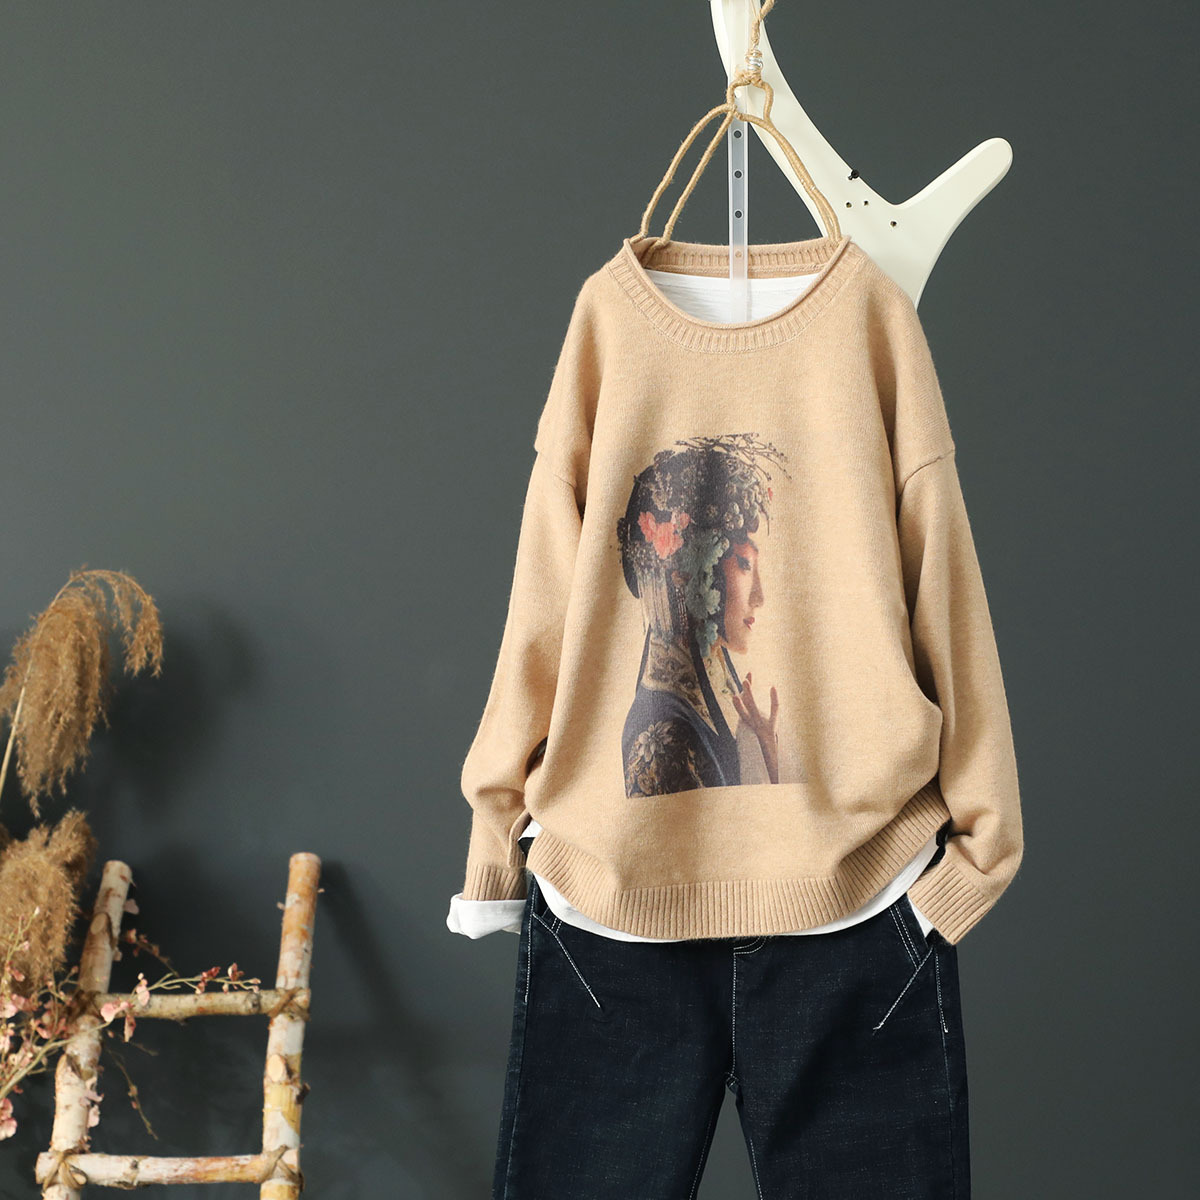 Chinese Style Drama Character Printed Lady Knitted Women Sweater Casual Round Neck Female Bottom Sweater Tops